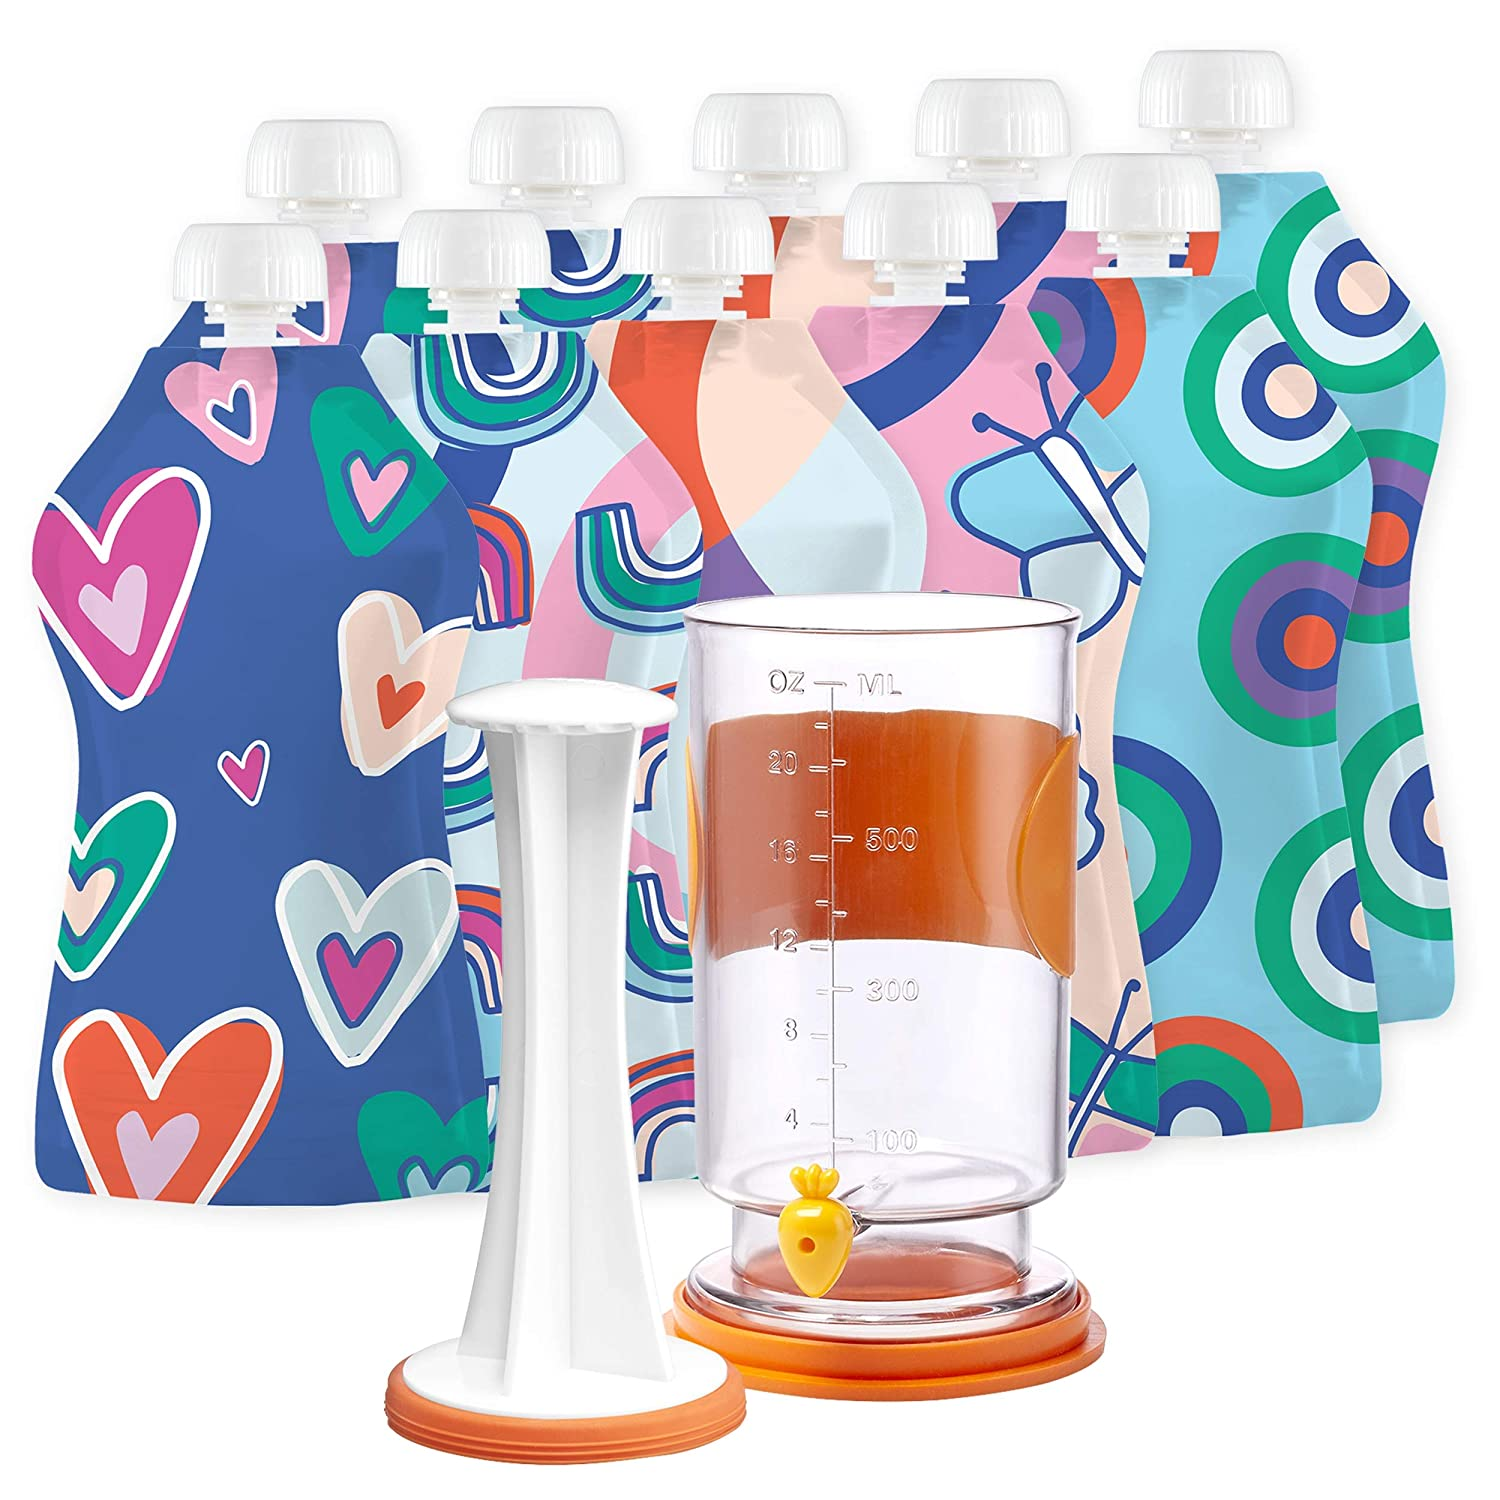 Squooshi Reusable Food Pouch Filling Station Kit V1